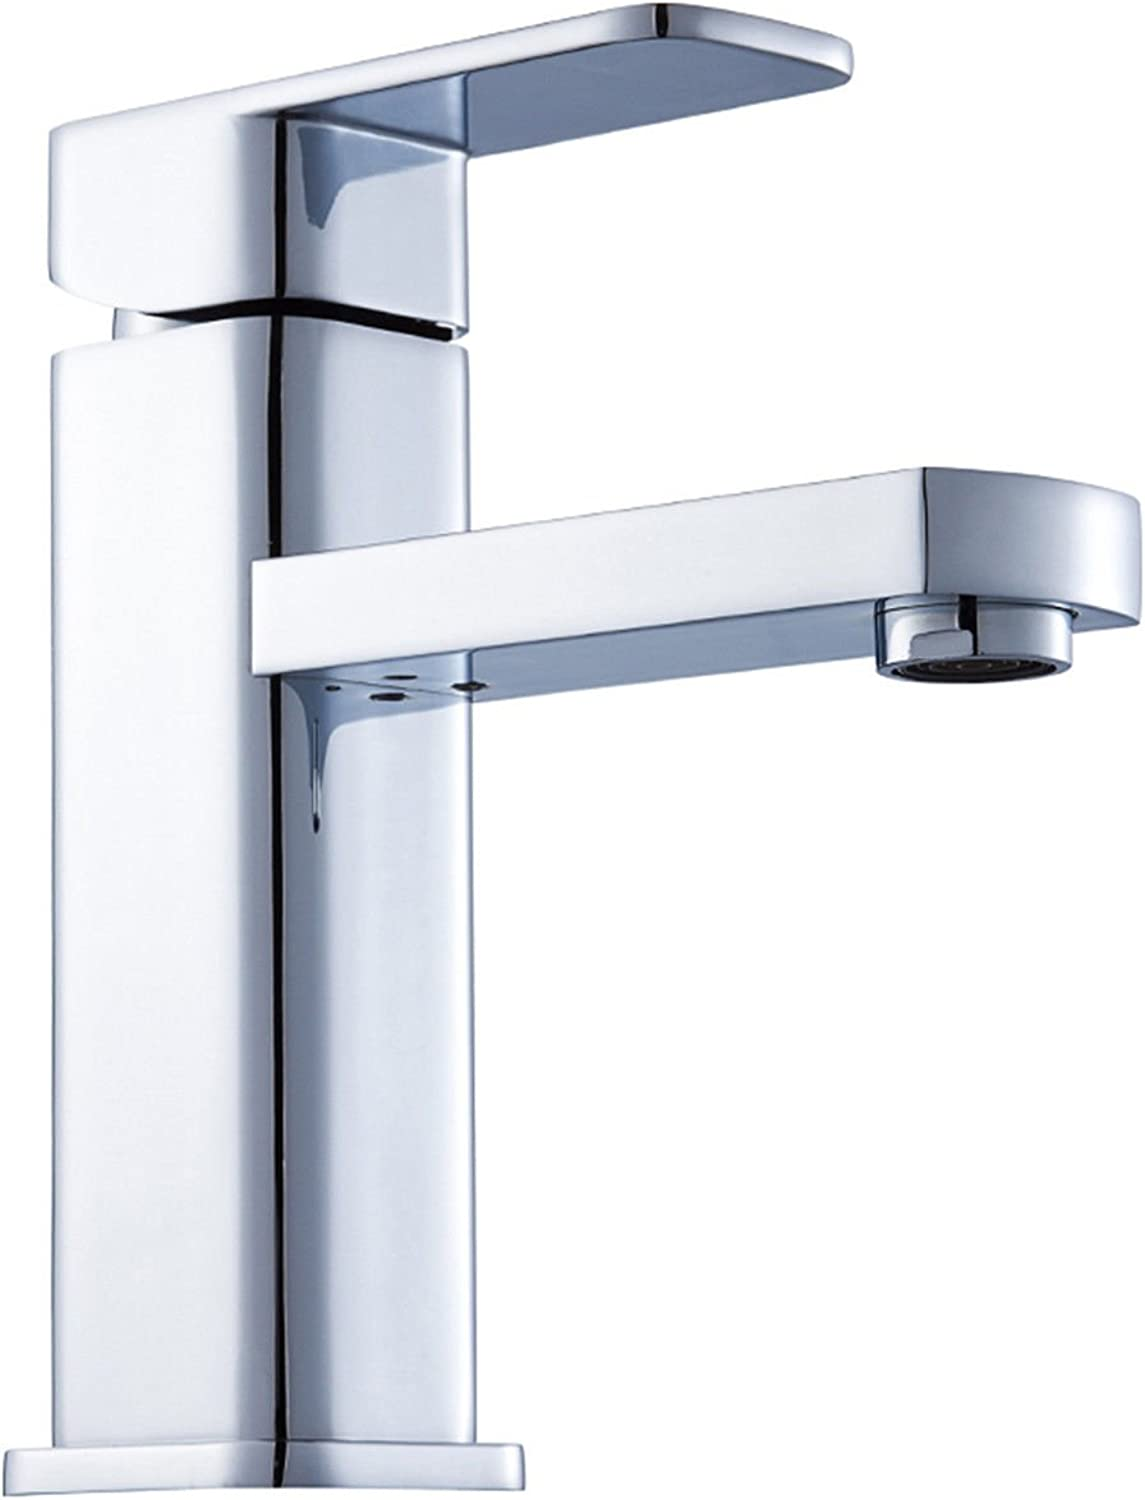 Gyps Faucet Single-Lever Washbasin Mixer Tap Tap Tap Home Wash Basin Cold Tap Washbasin Mixer Tap Classic Chrome